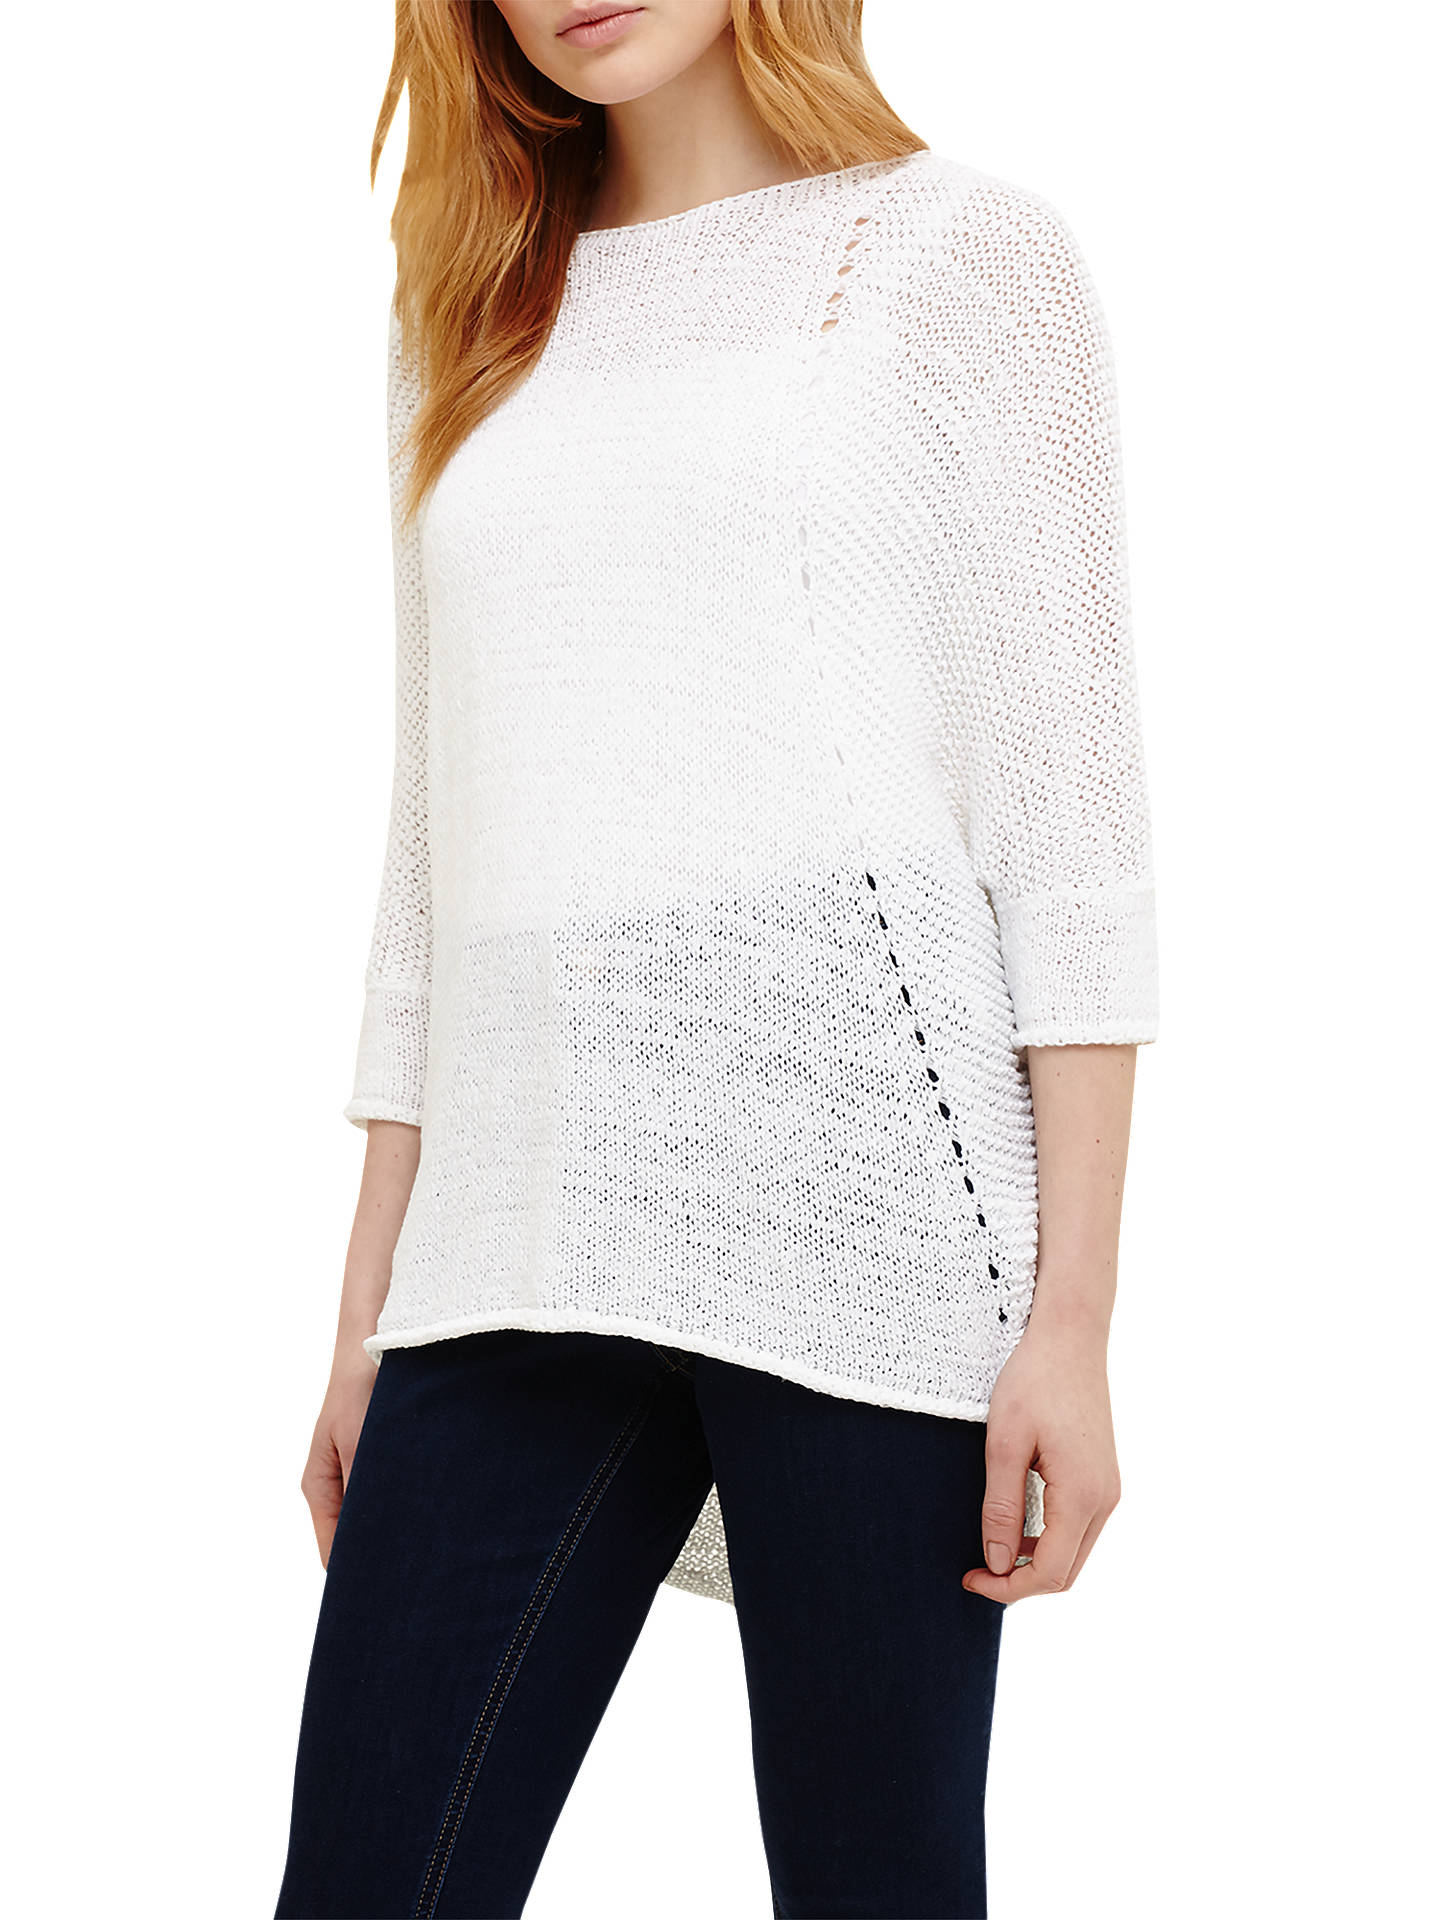 578f8bbe442b59 Buy Phase Eight Aideen Jumper, White, XS Online at johnlewis.com ...